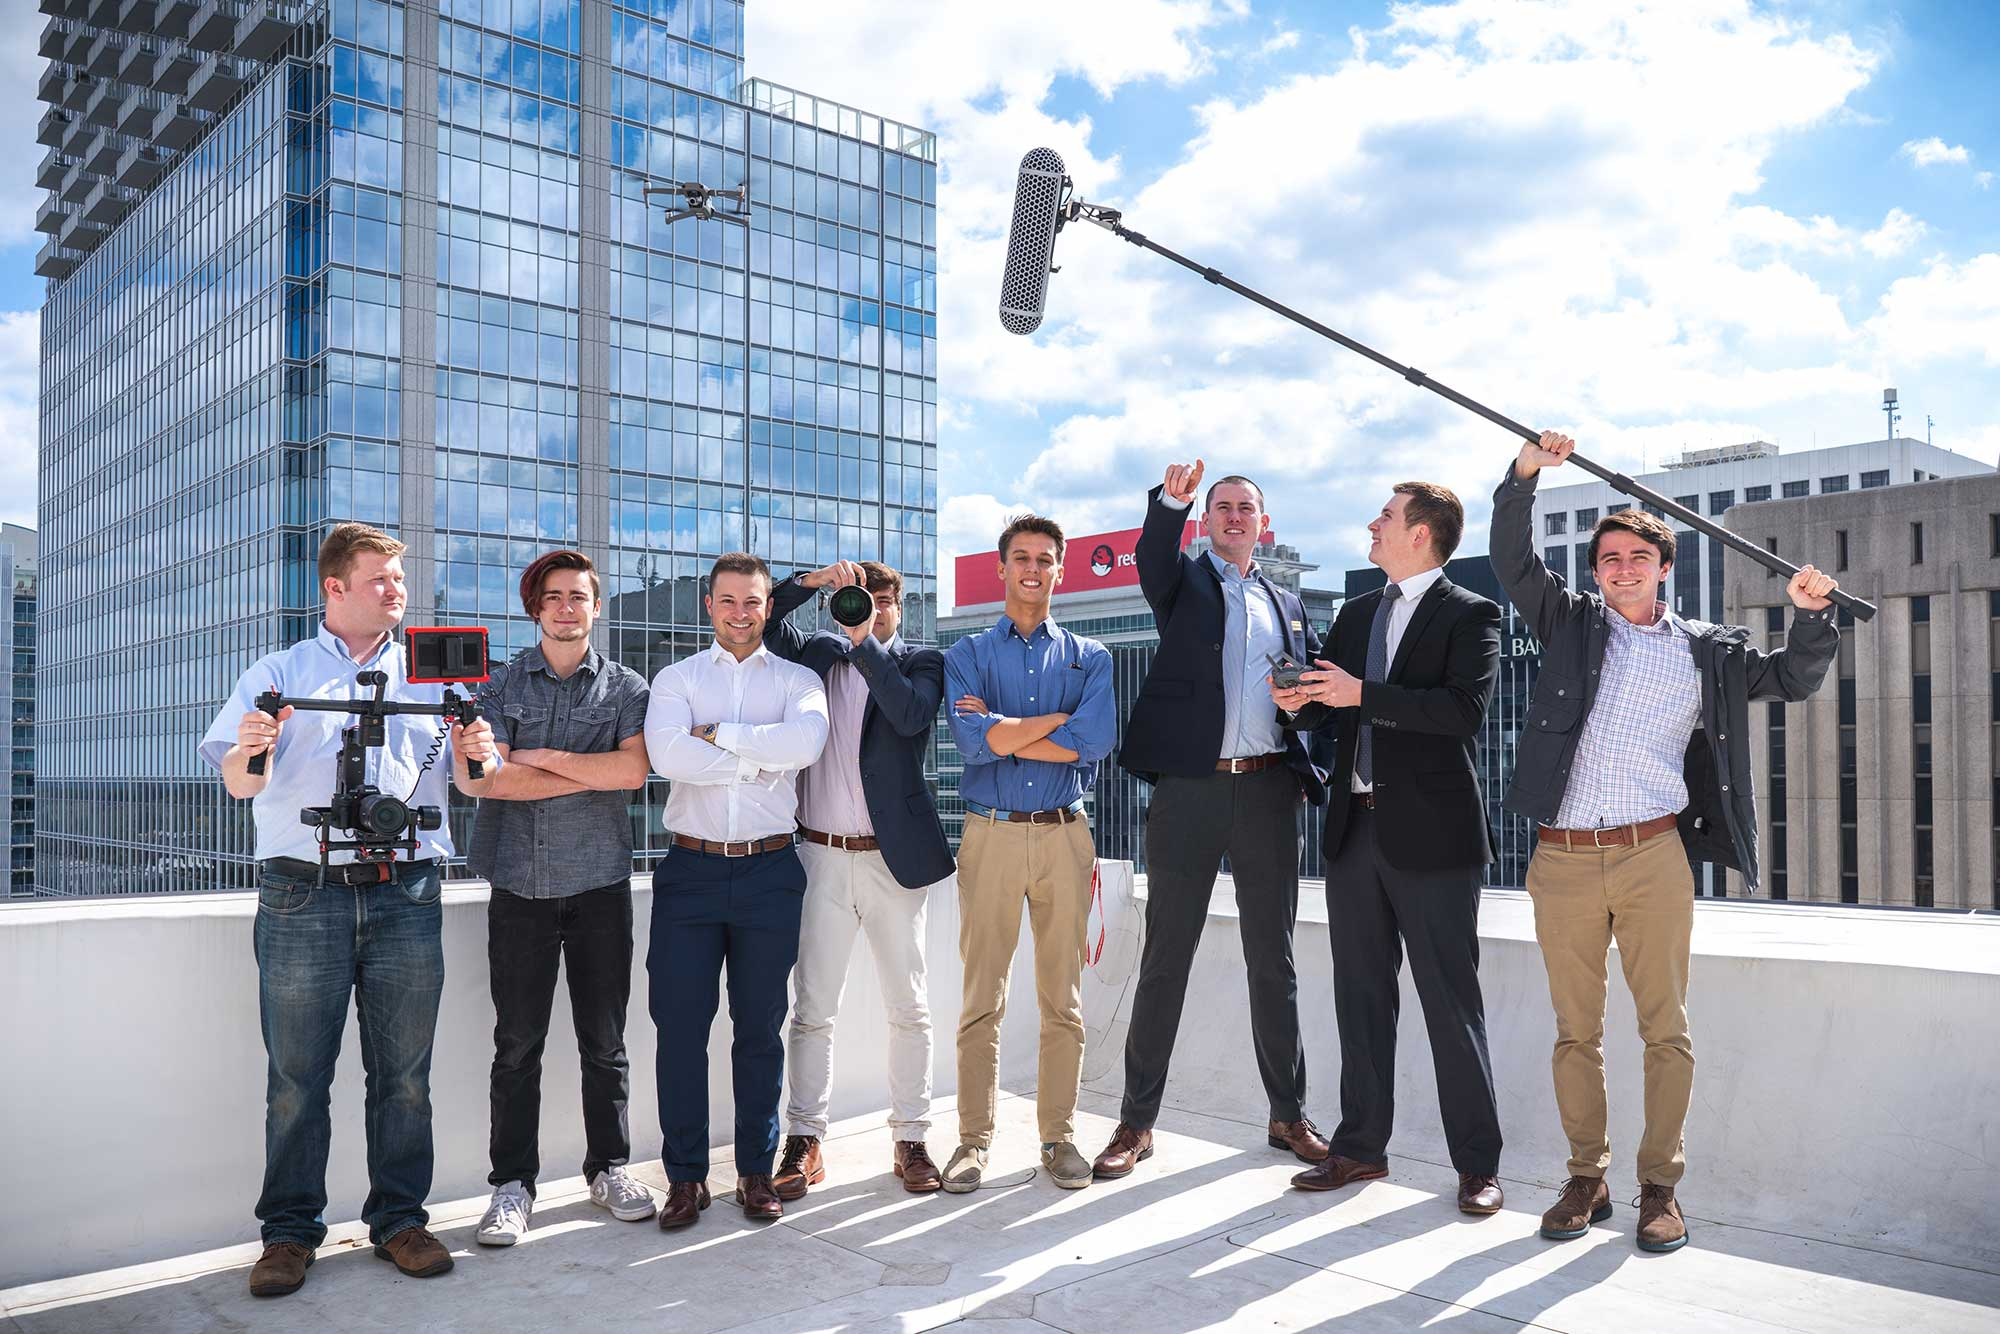 9miles Media team picture on roof